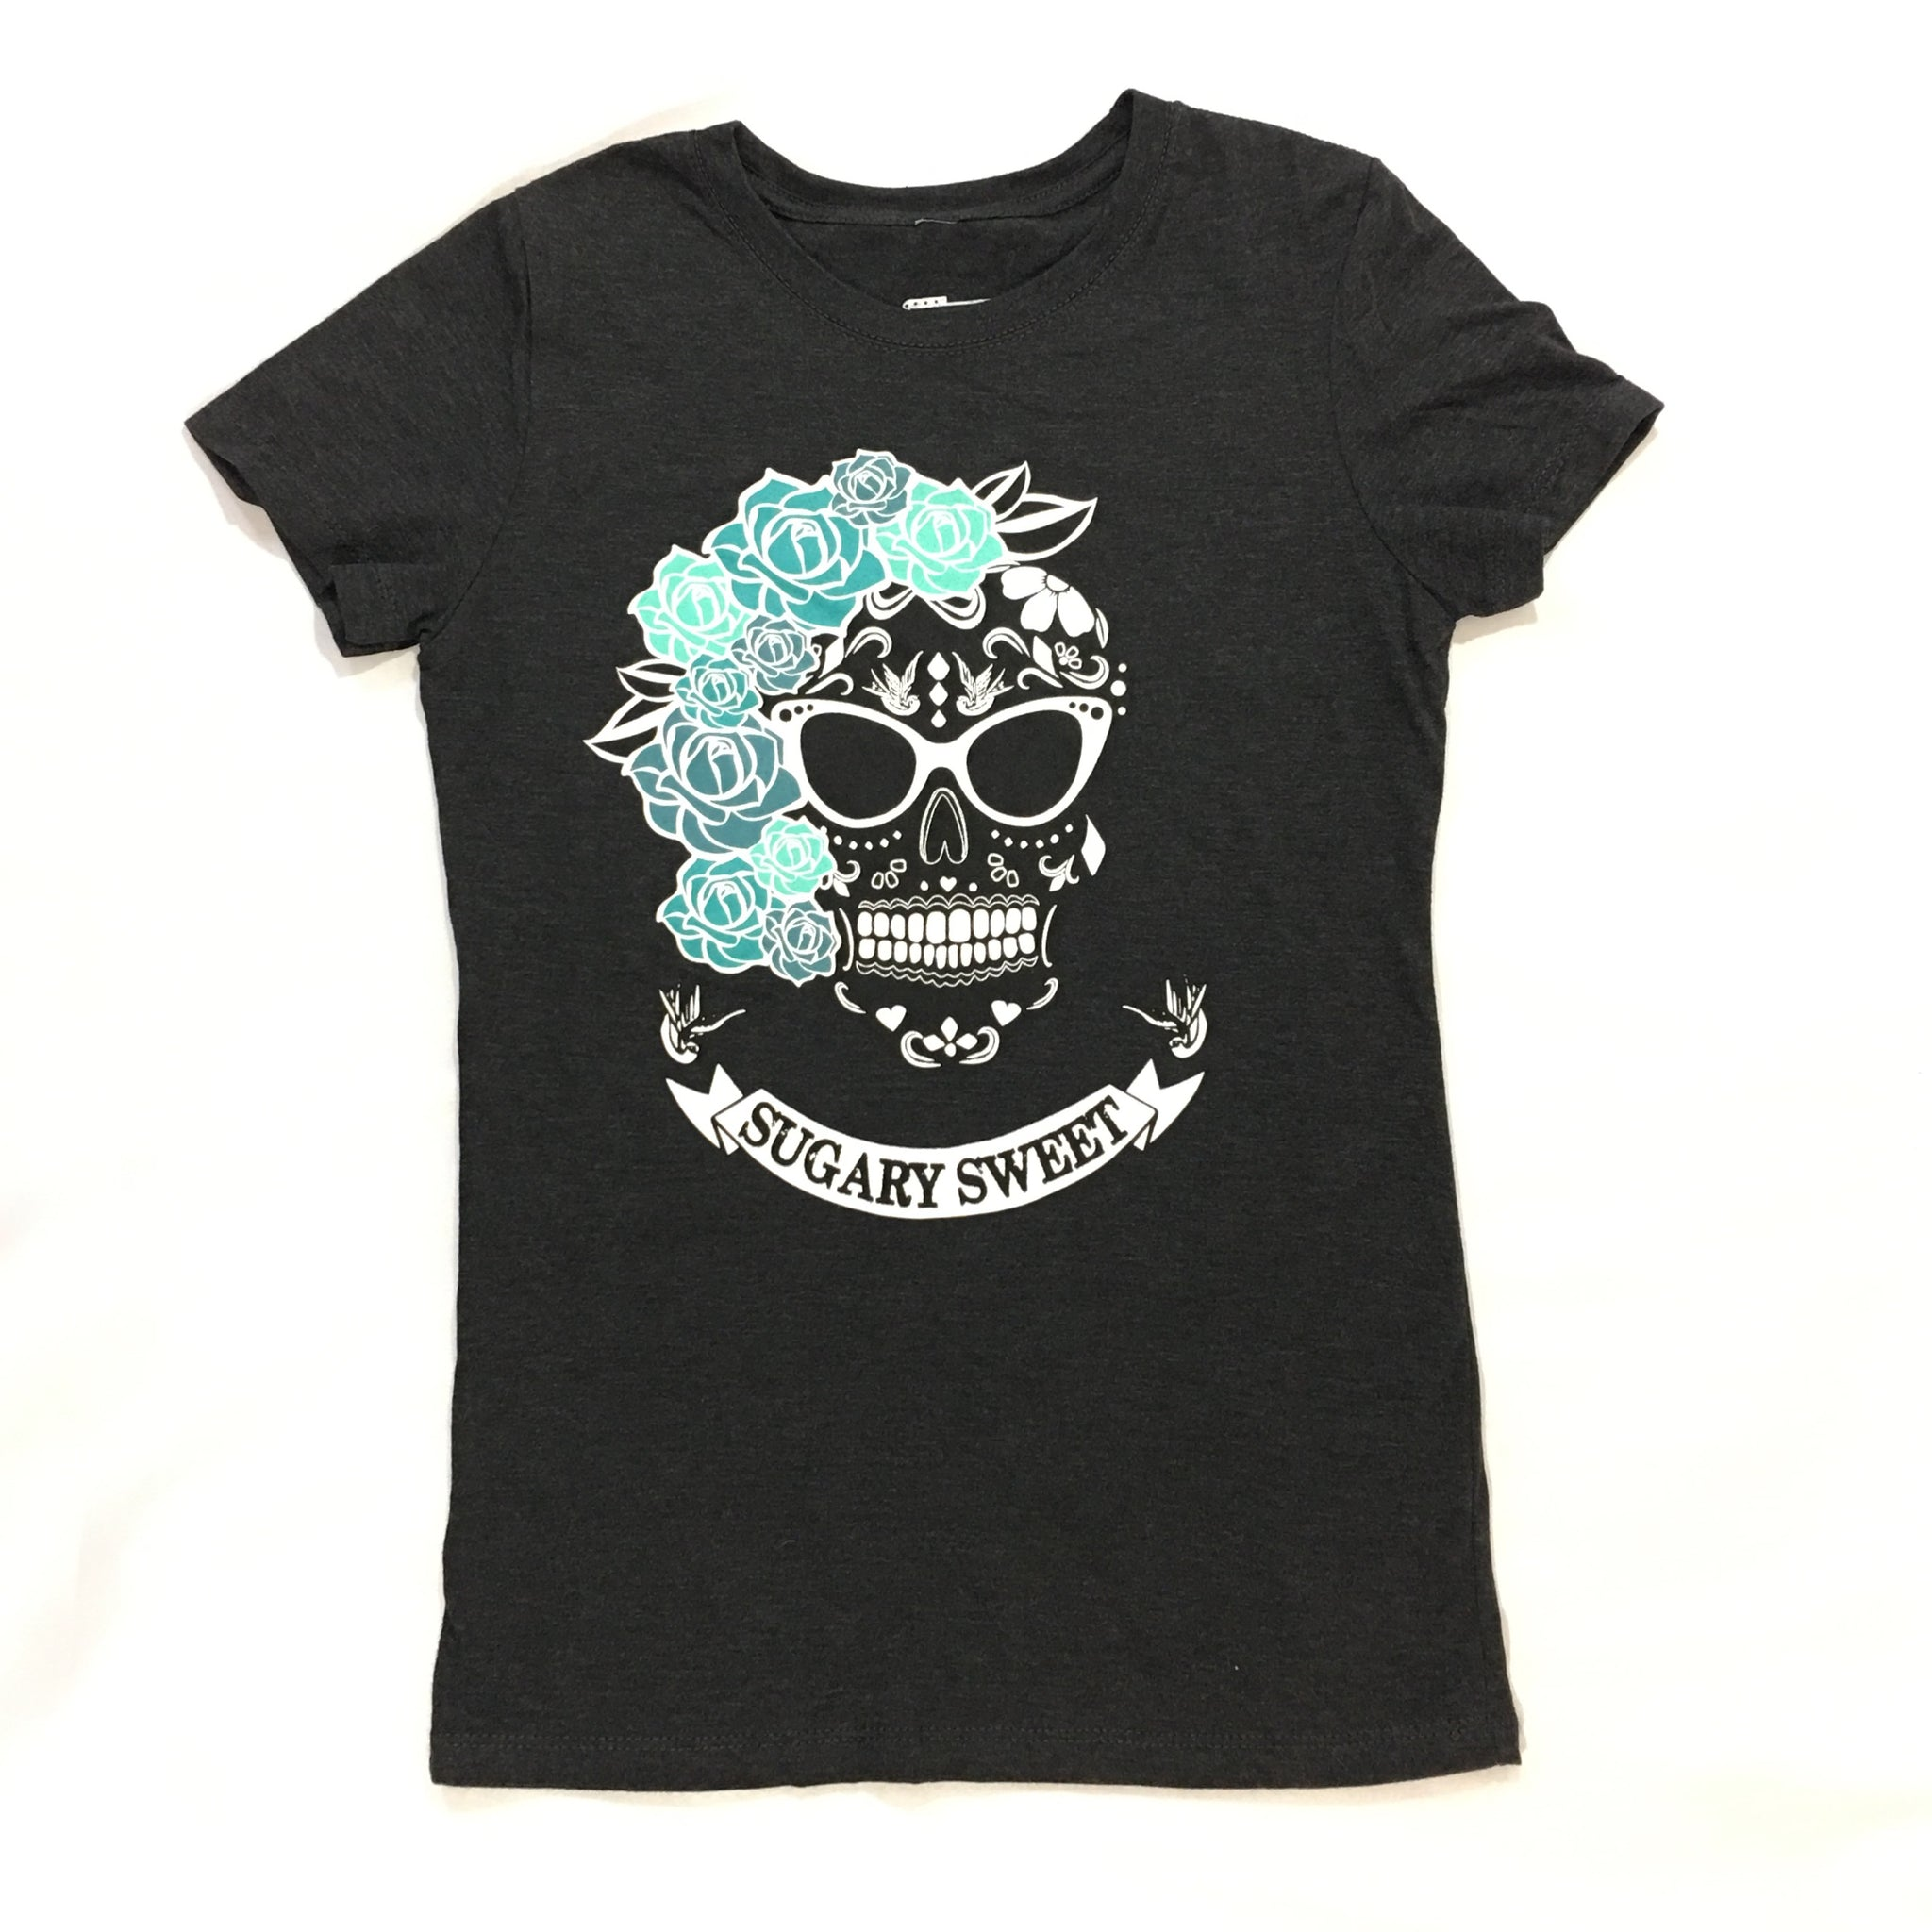 Sugary Sweet T-Shirt in Black